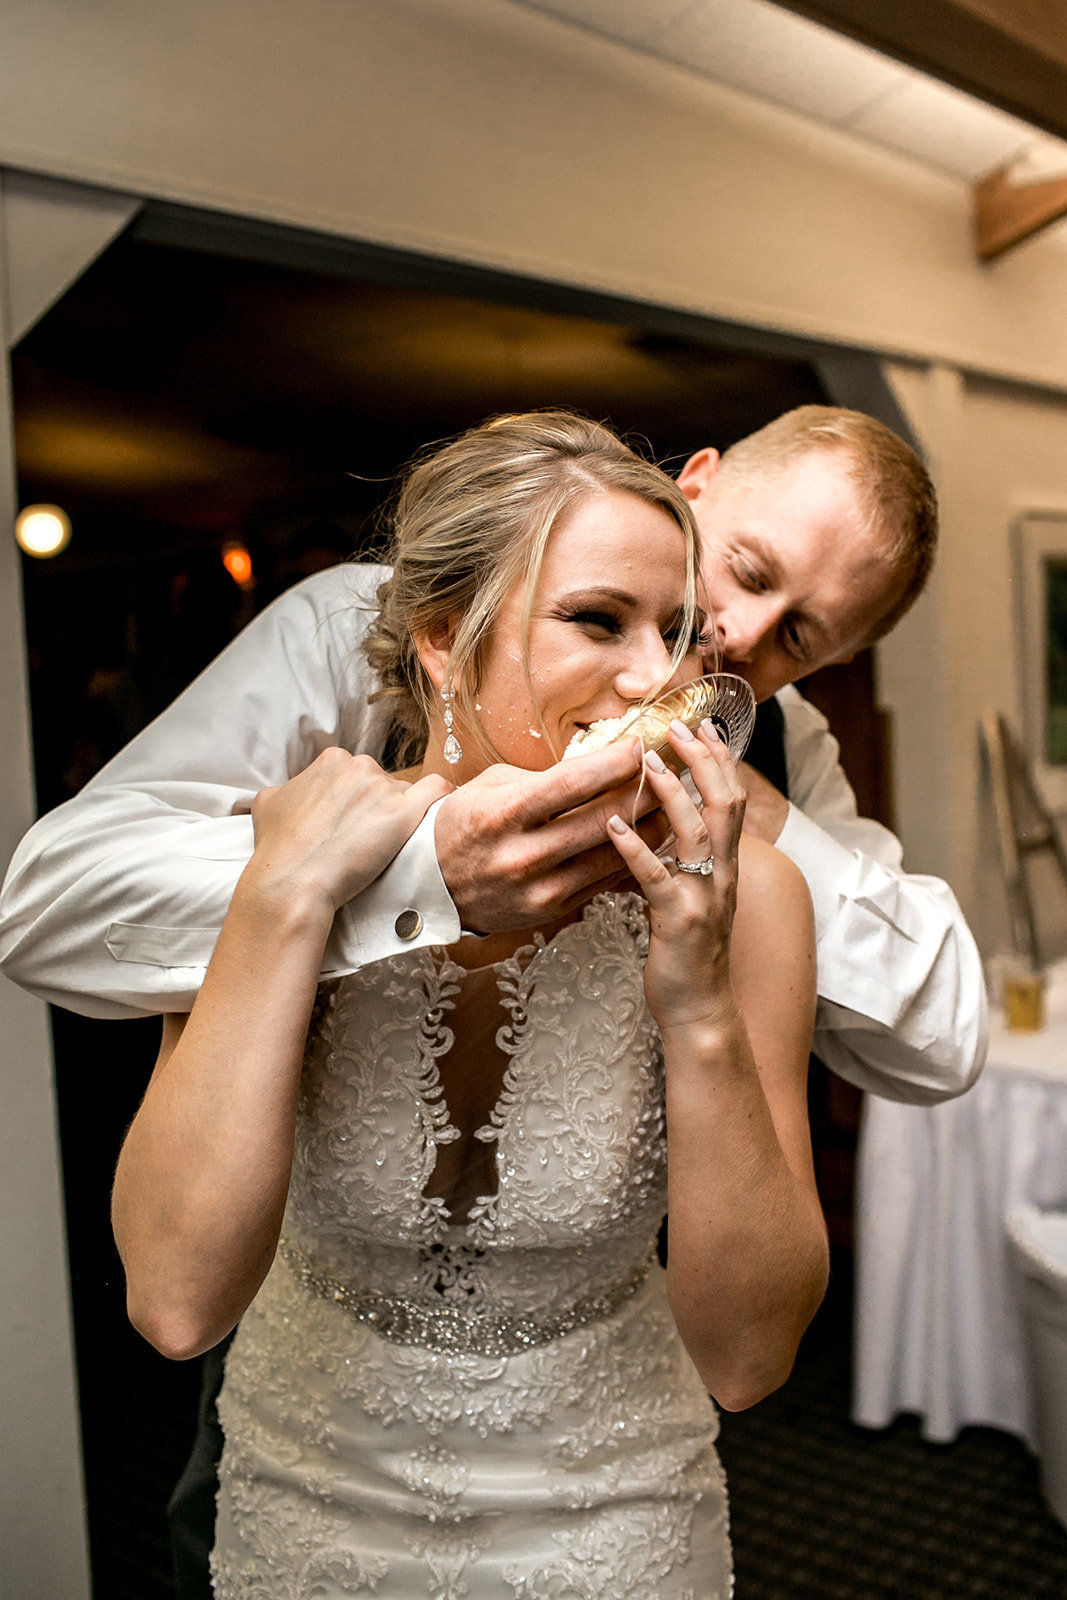 Des Moines Iowa couple  eating their cake at their wedding reception.